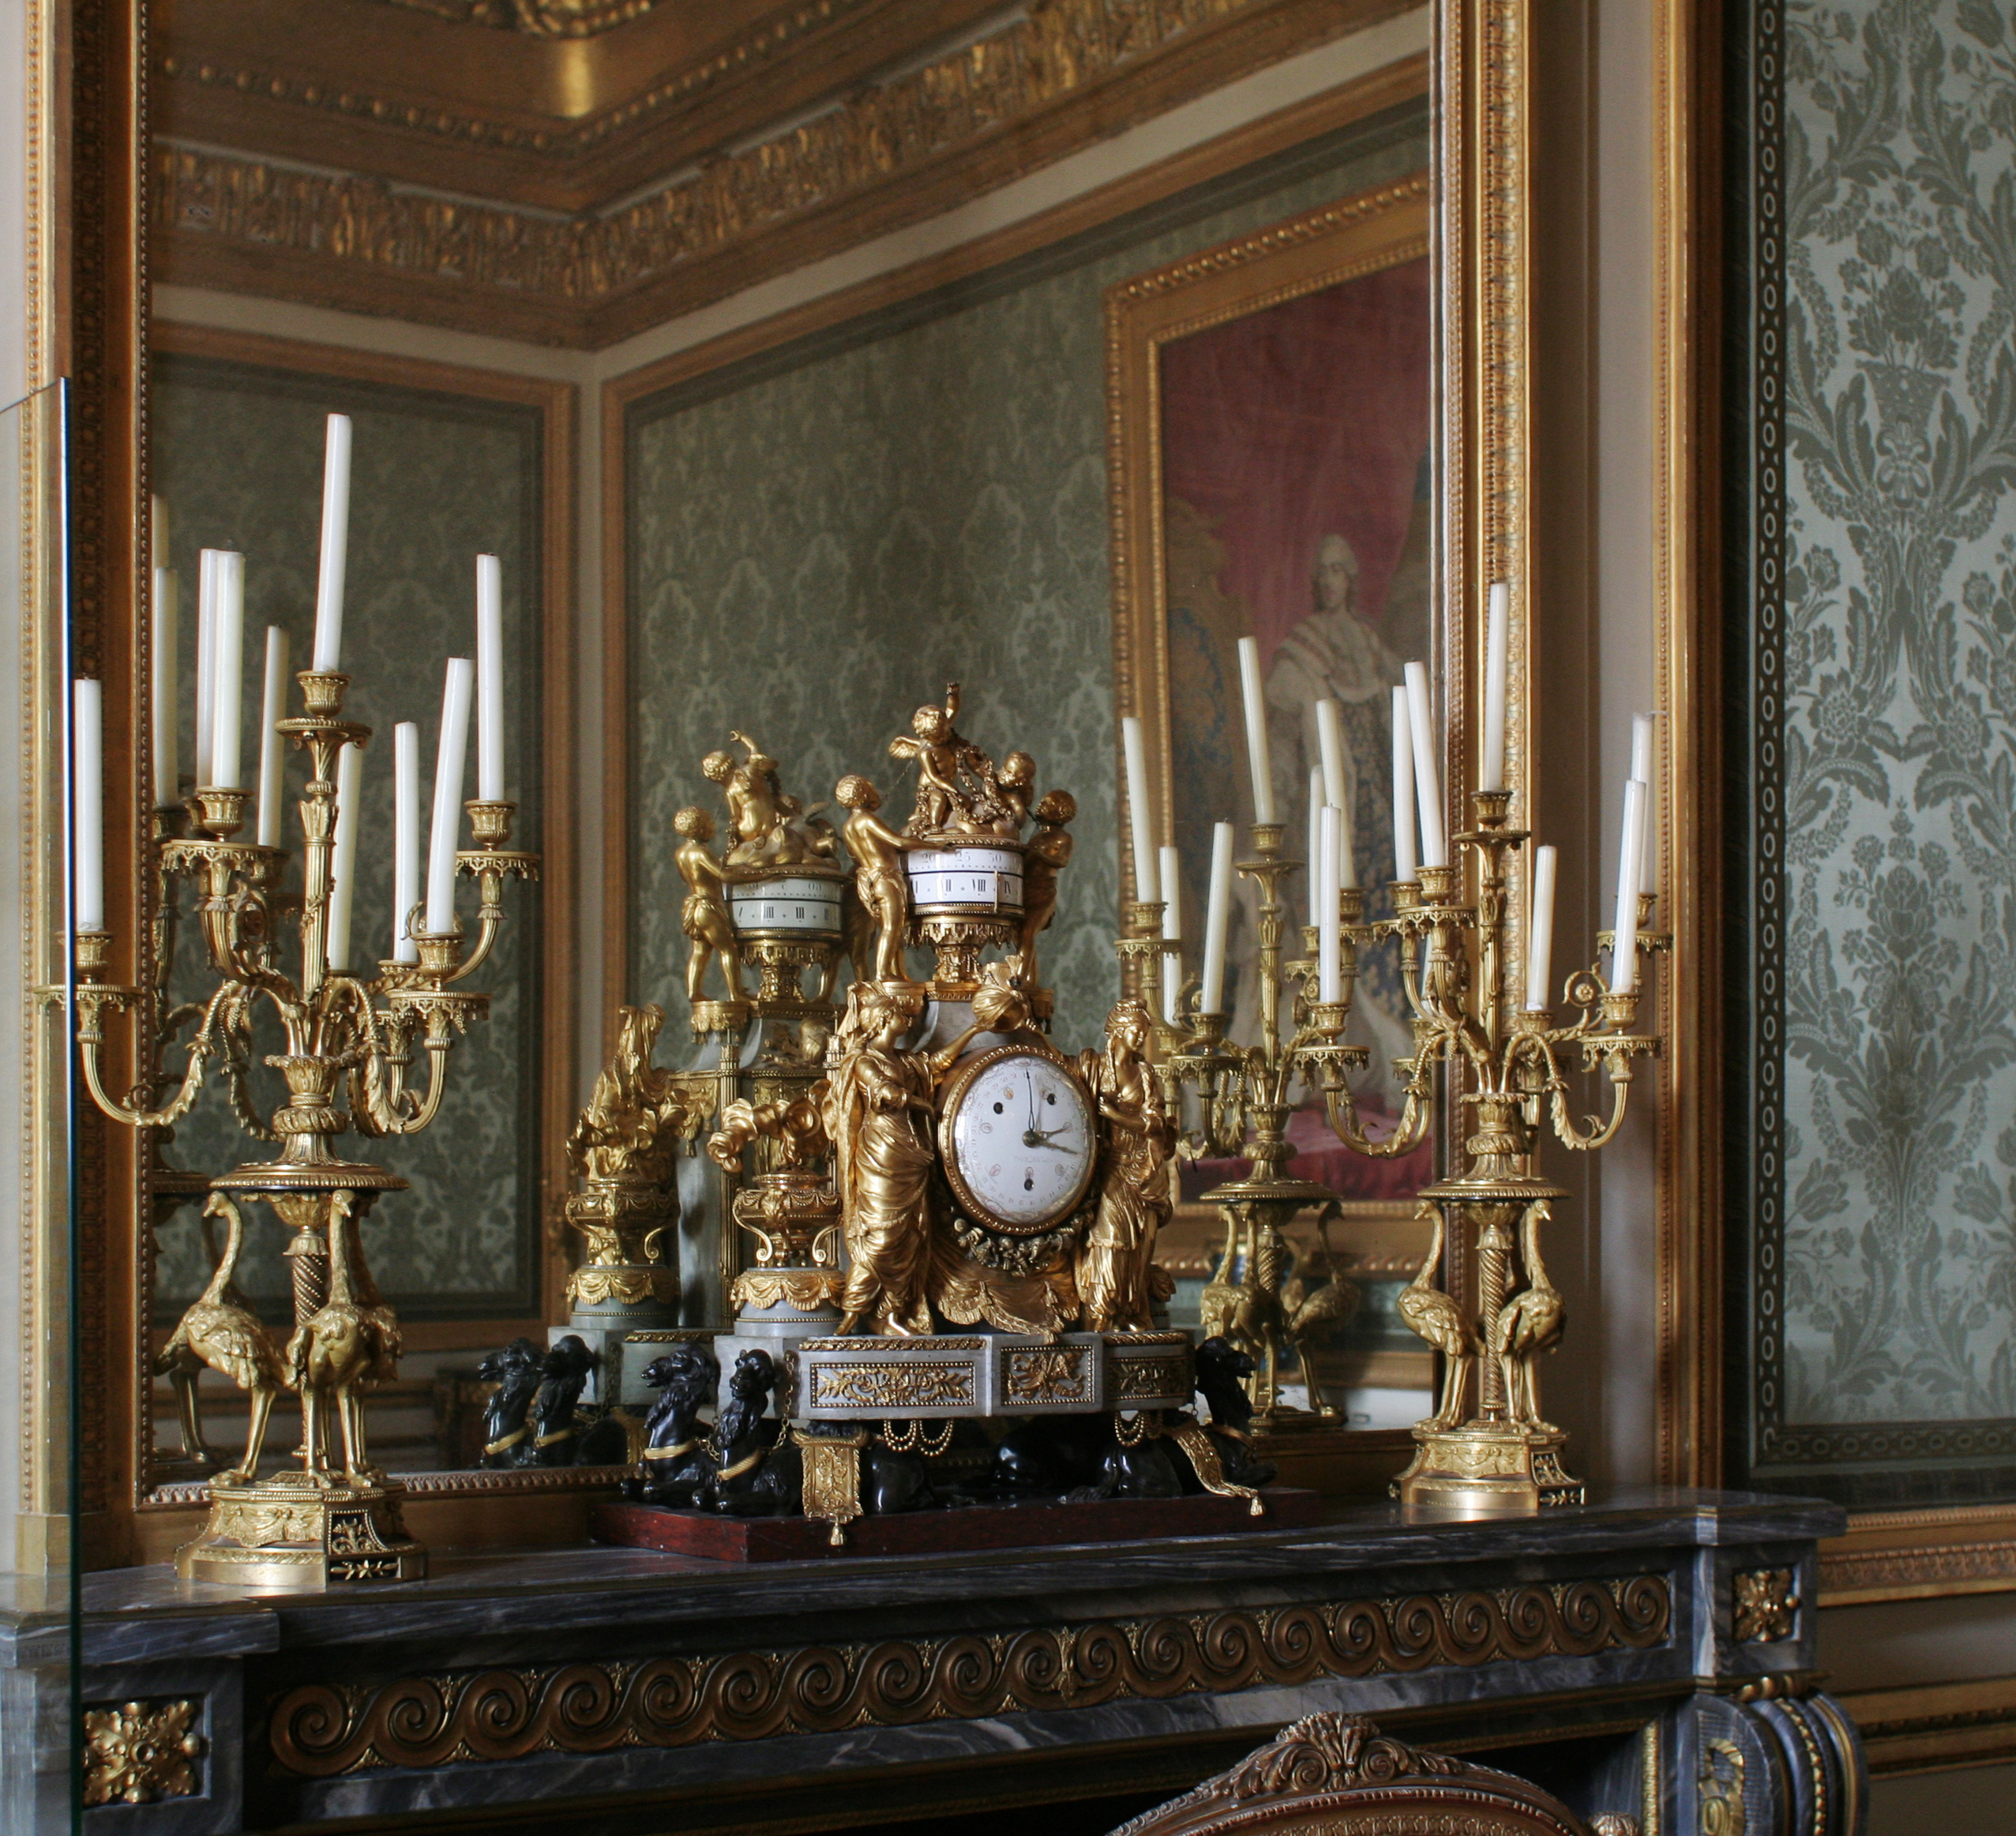 This is Versailles: Salon of the Nobility